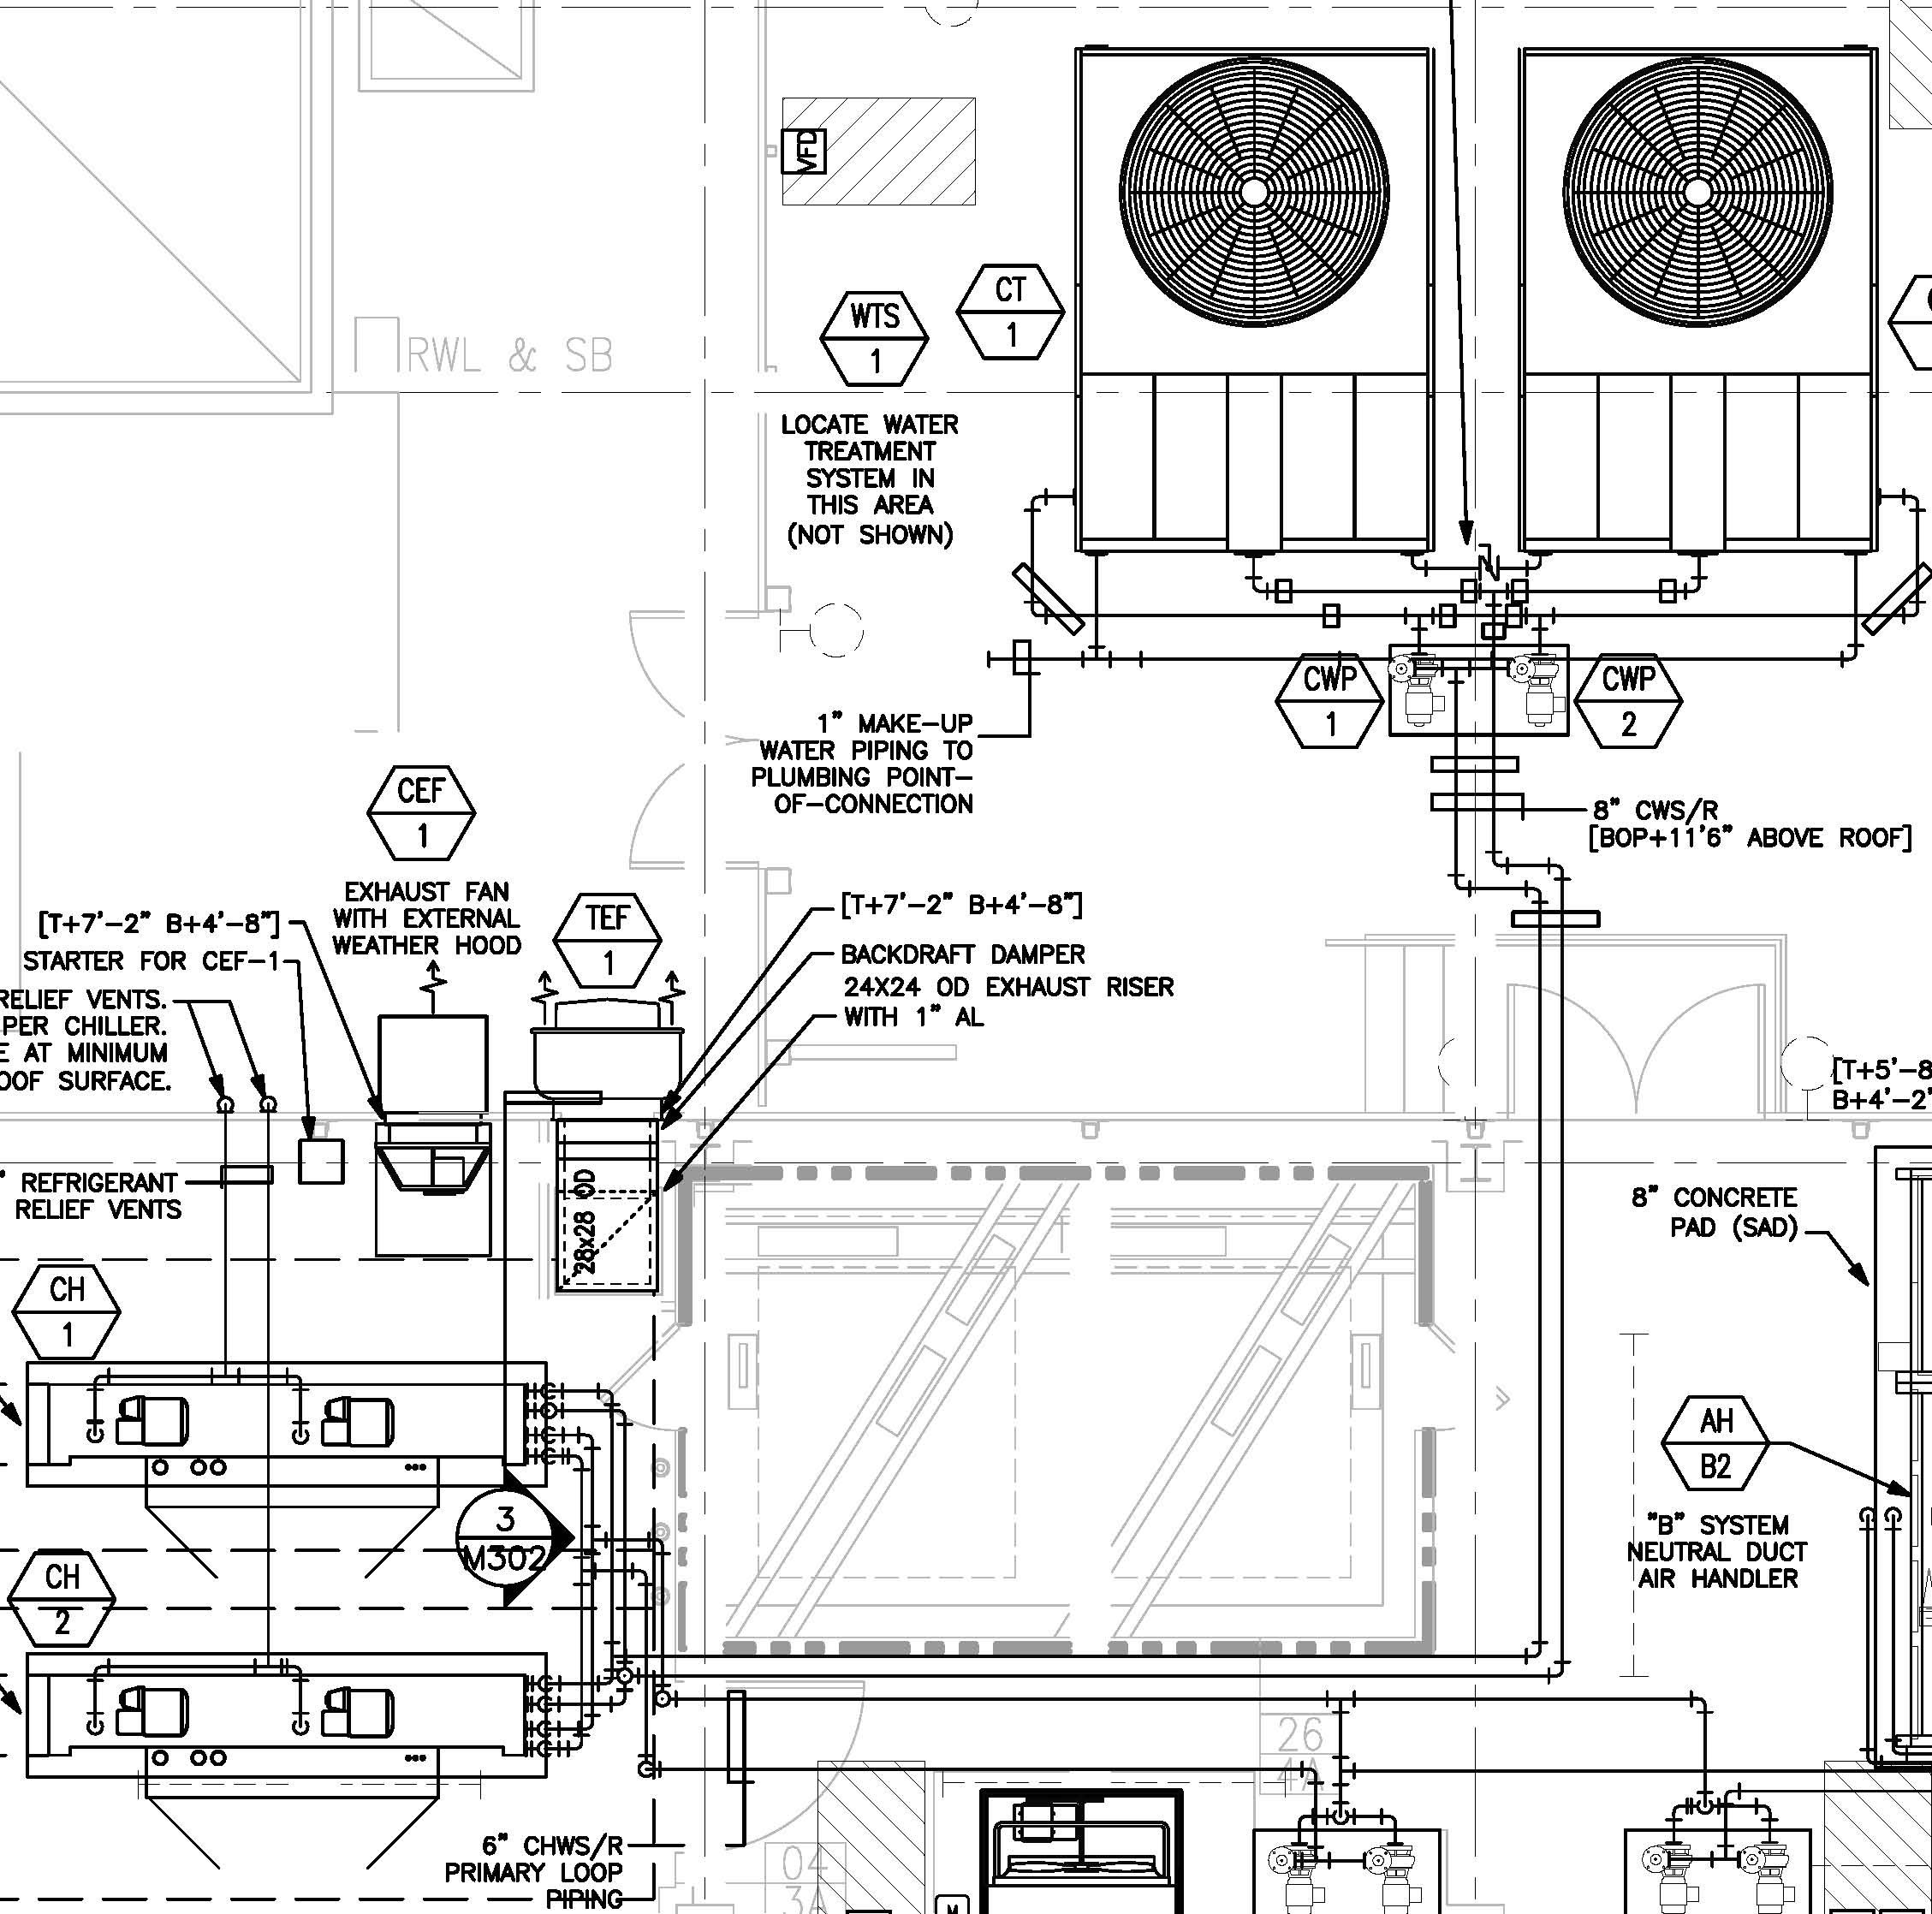 air conditioner wiring diagram Collection-Wiring Diagram Ac New 16 Unique Air Conditioner Wiring Diagram 1-m